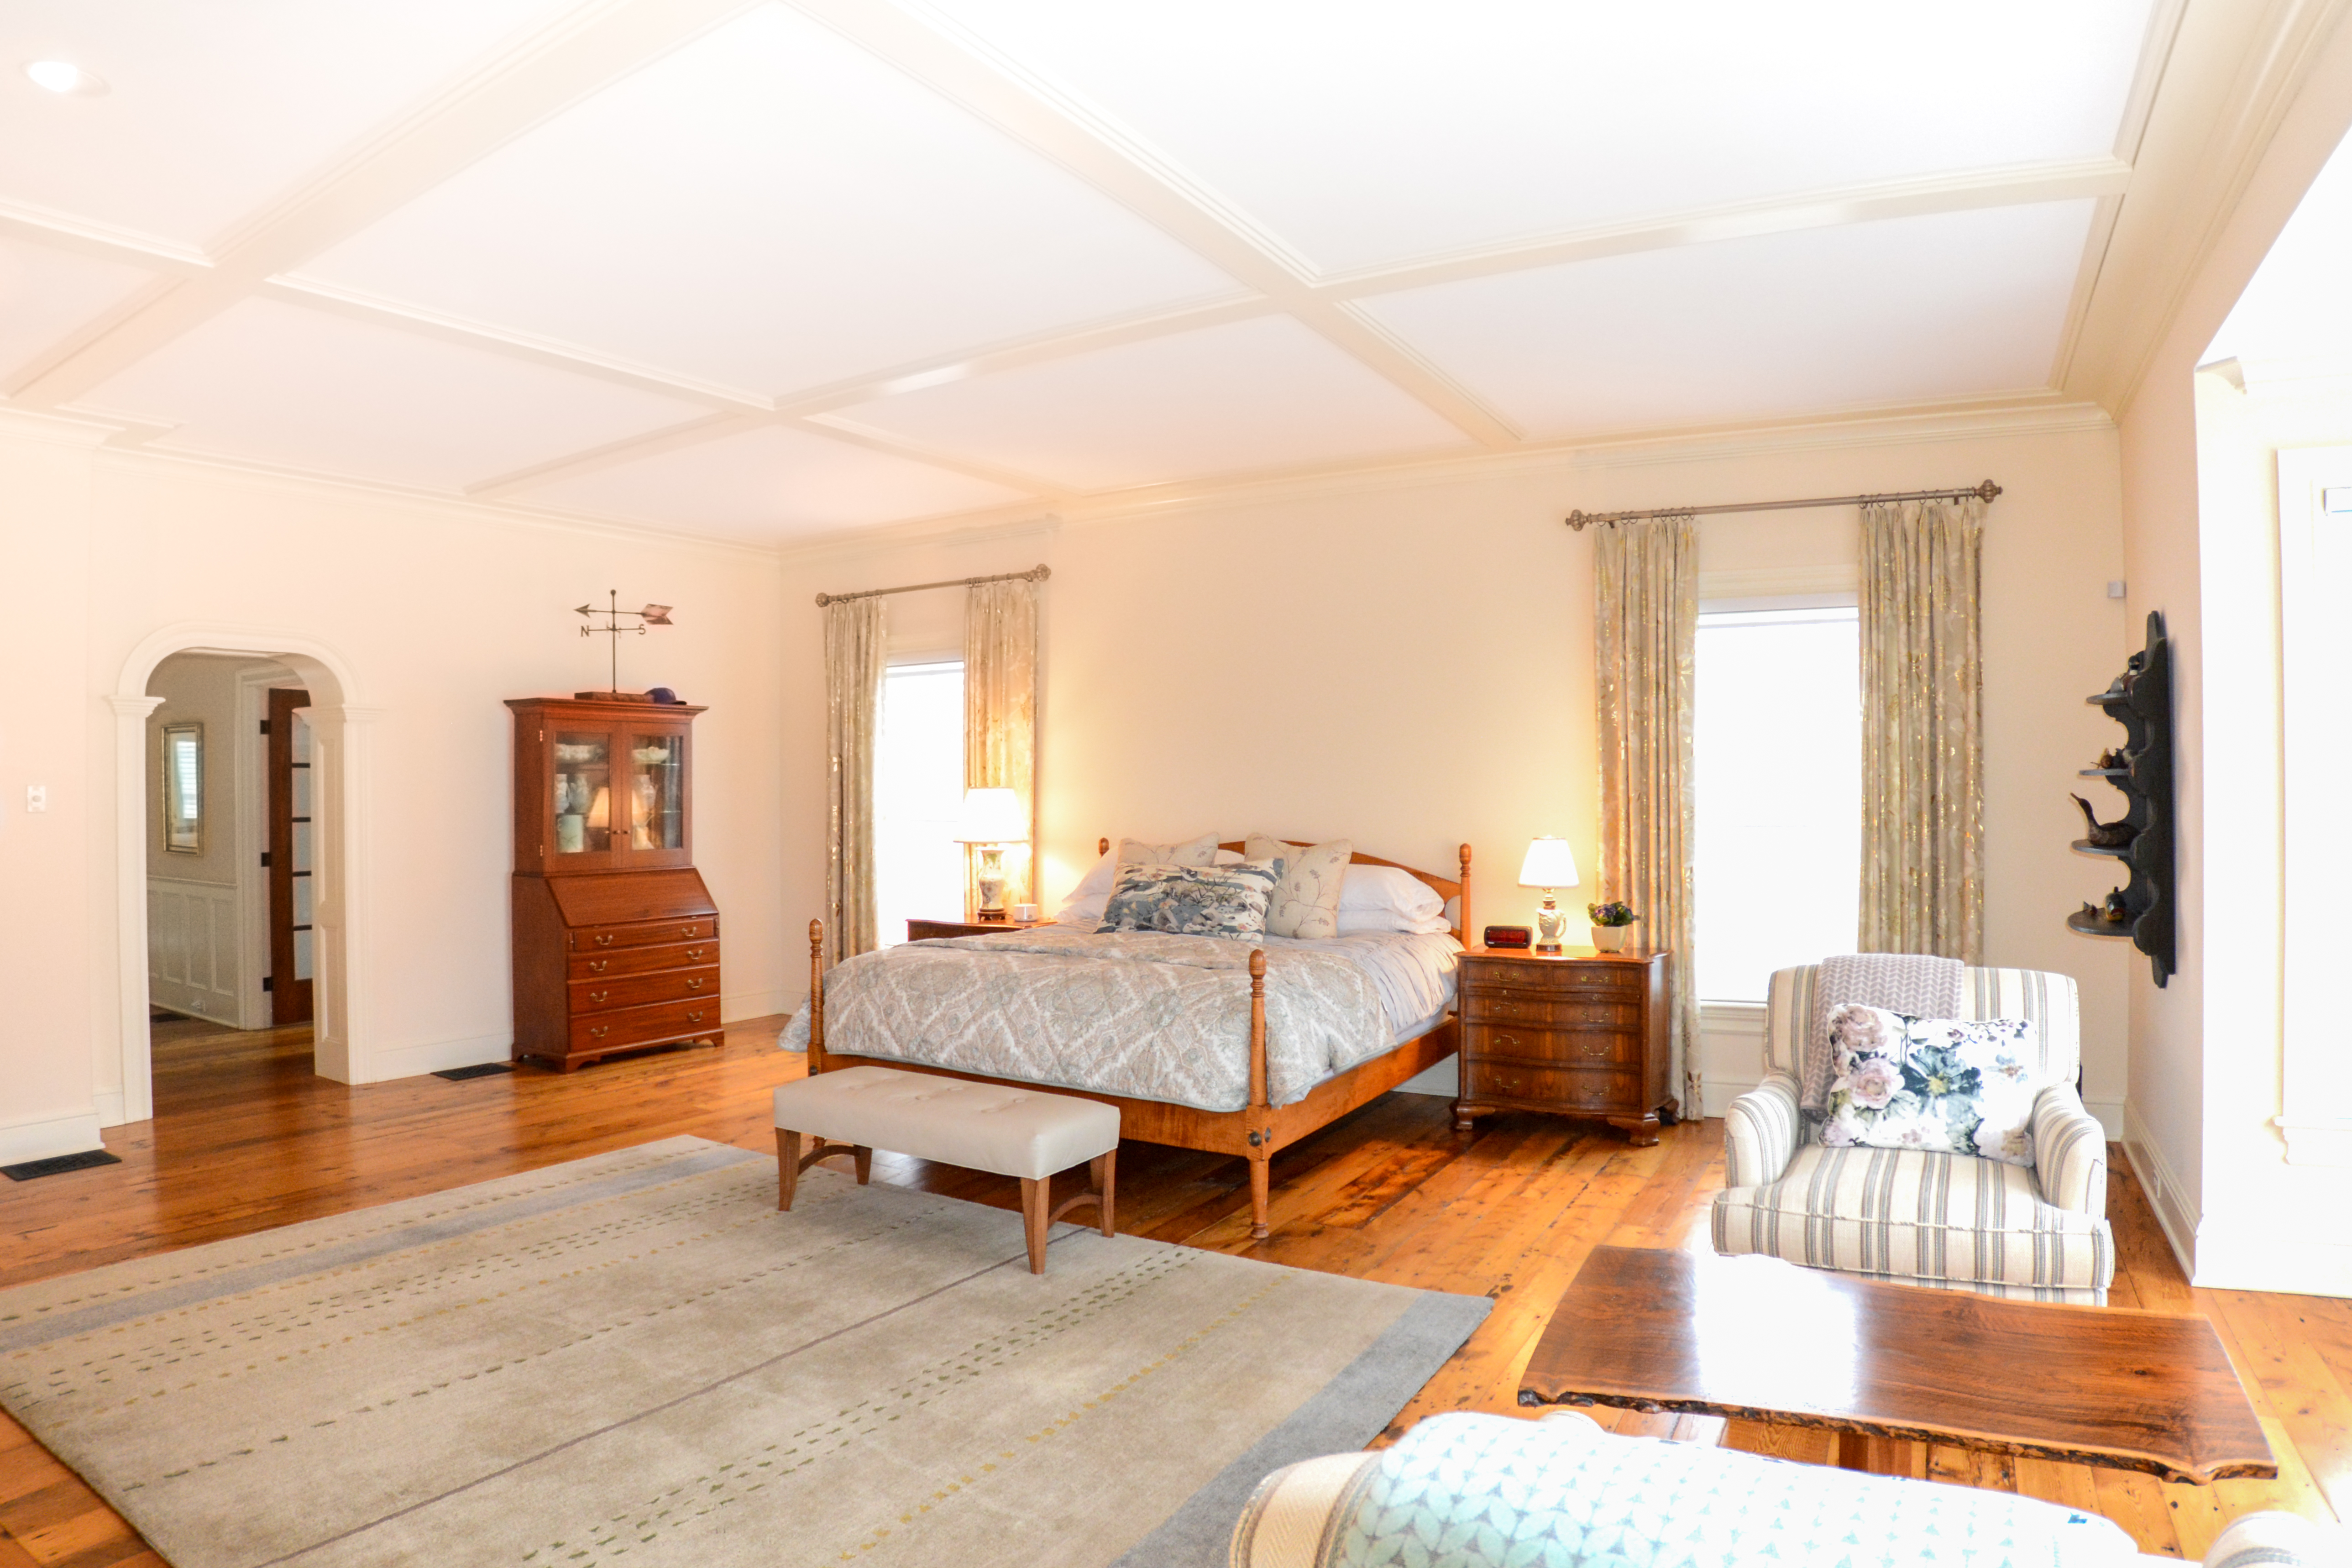 Inra Master Bedroom